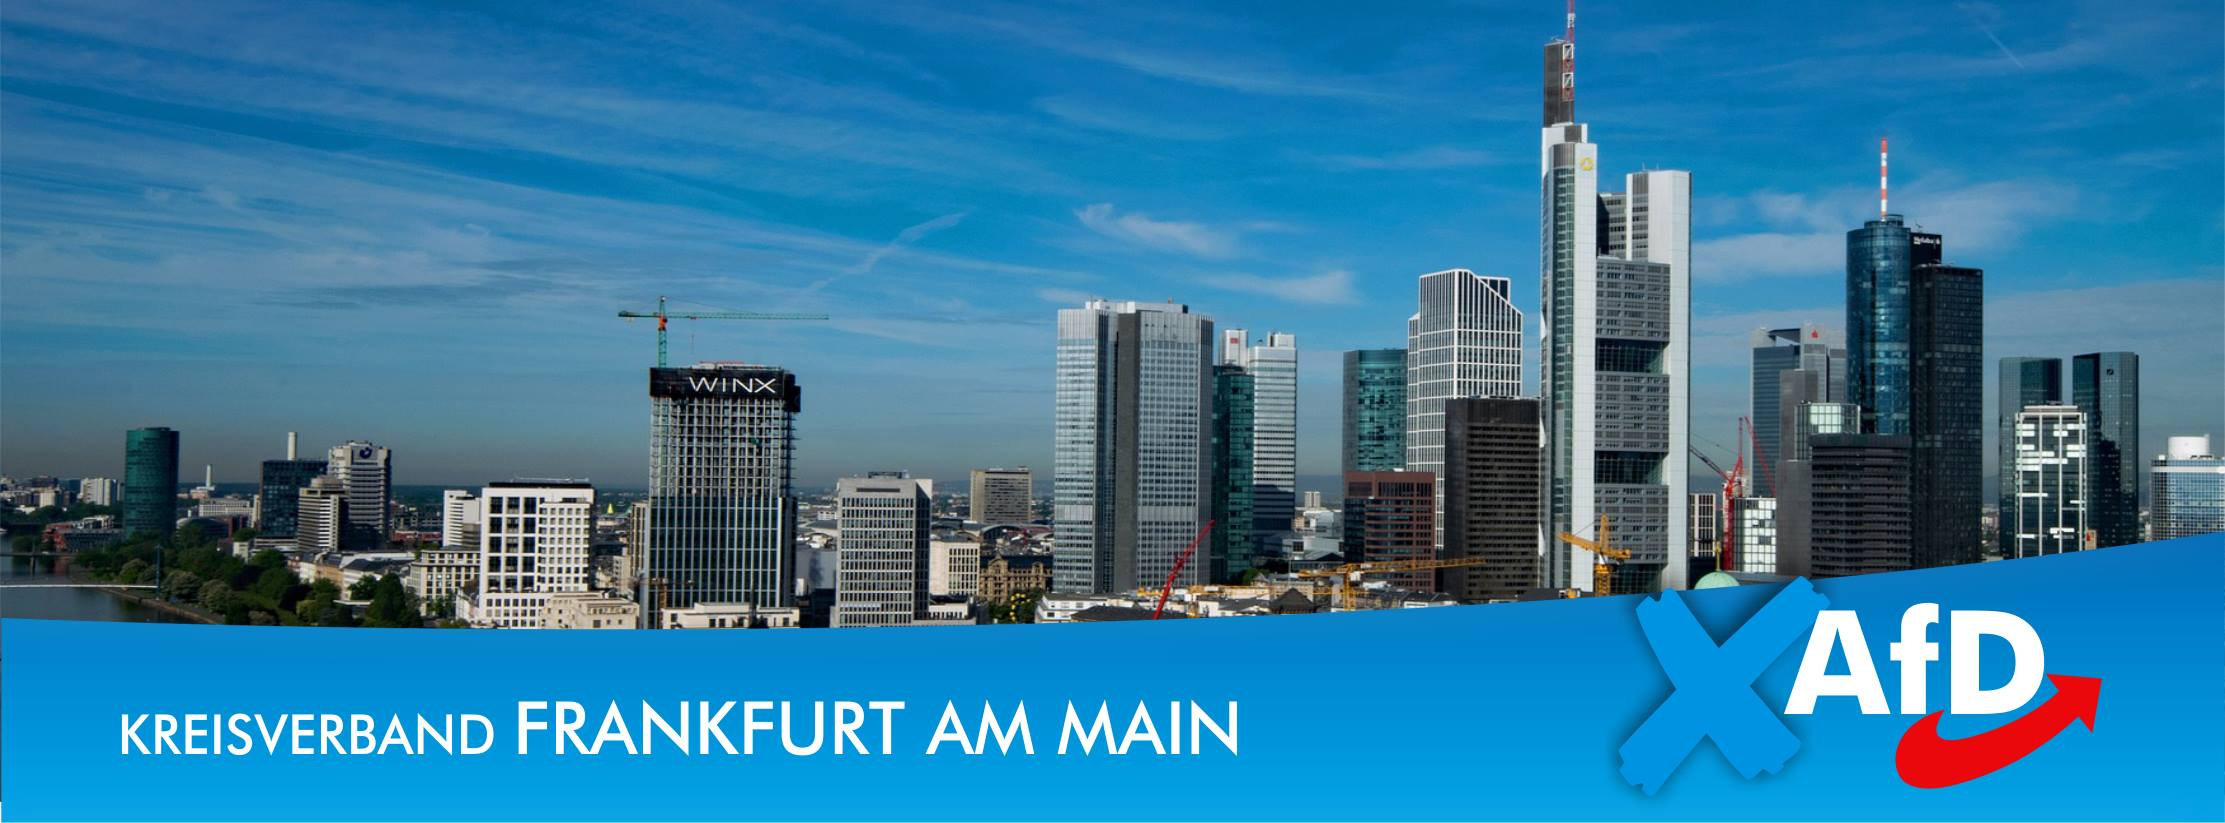 AfD Frankfurt am Main Logo